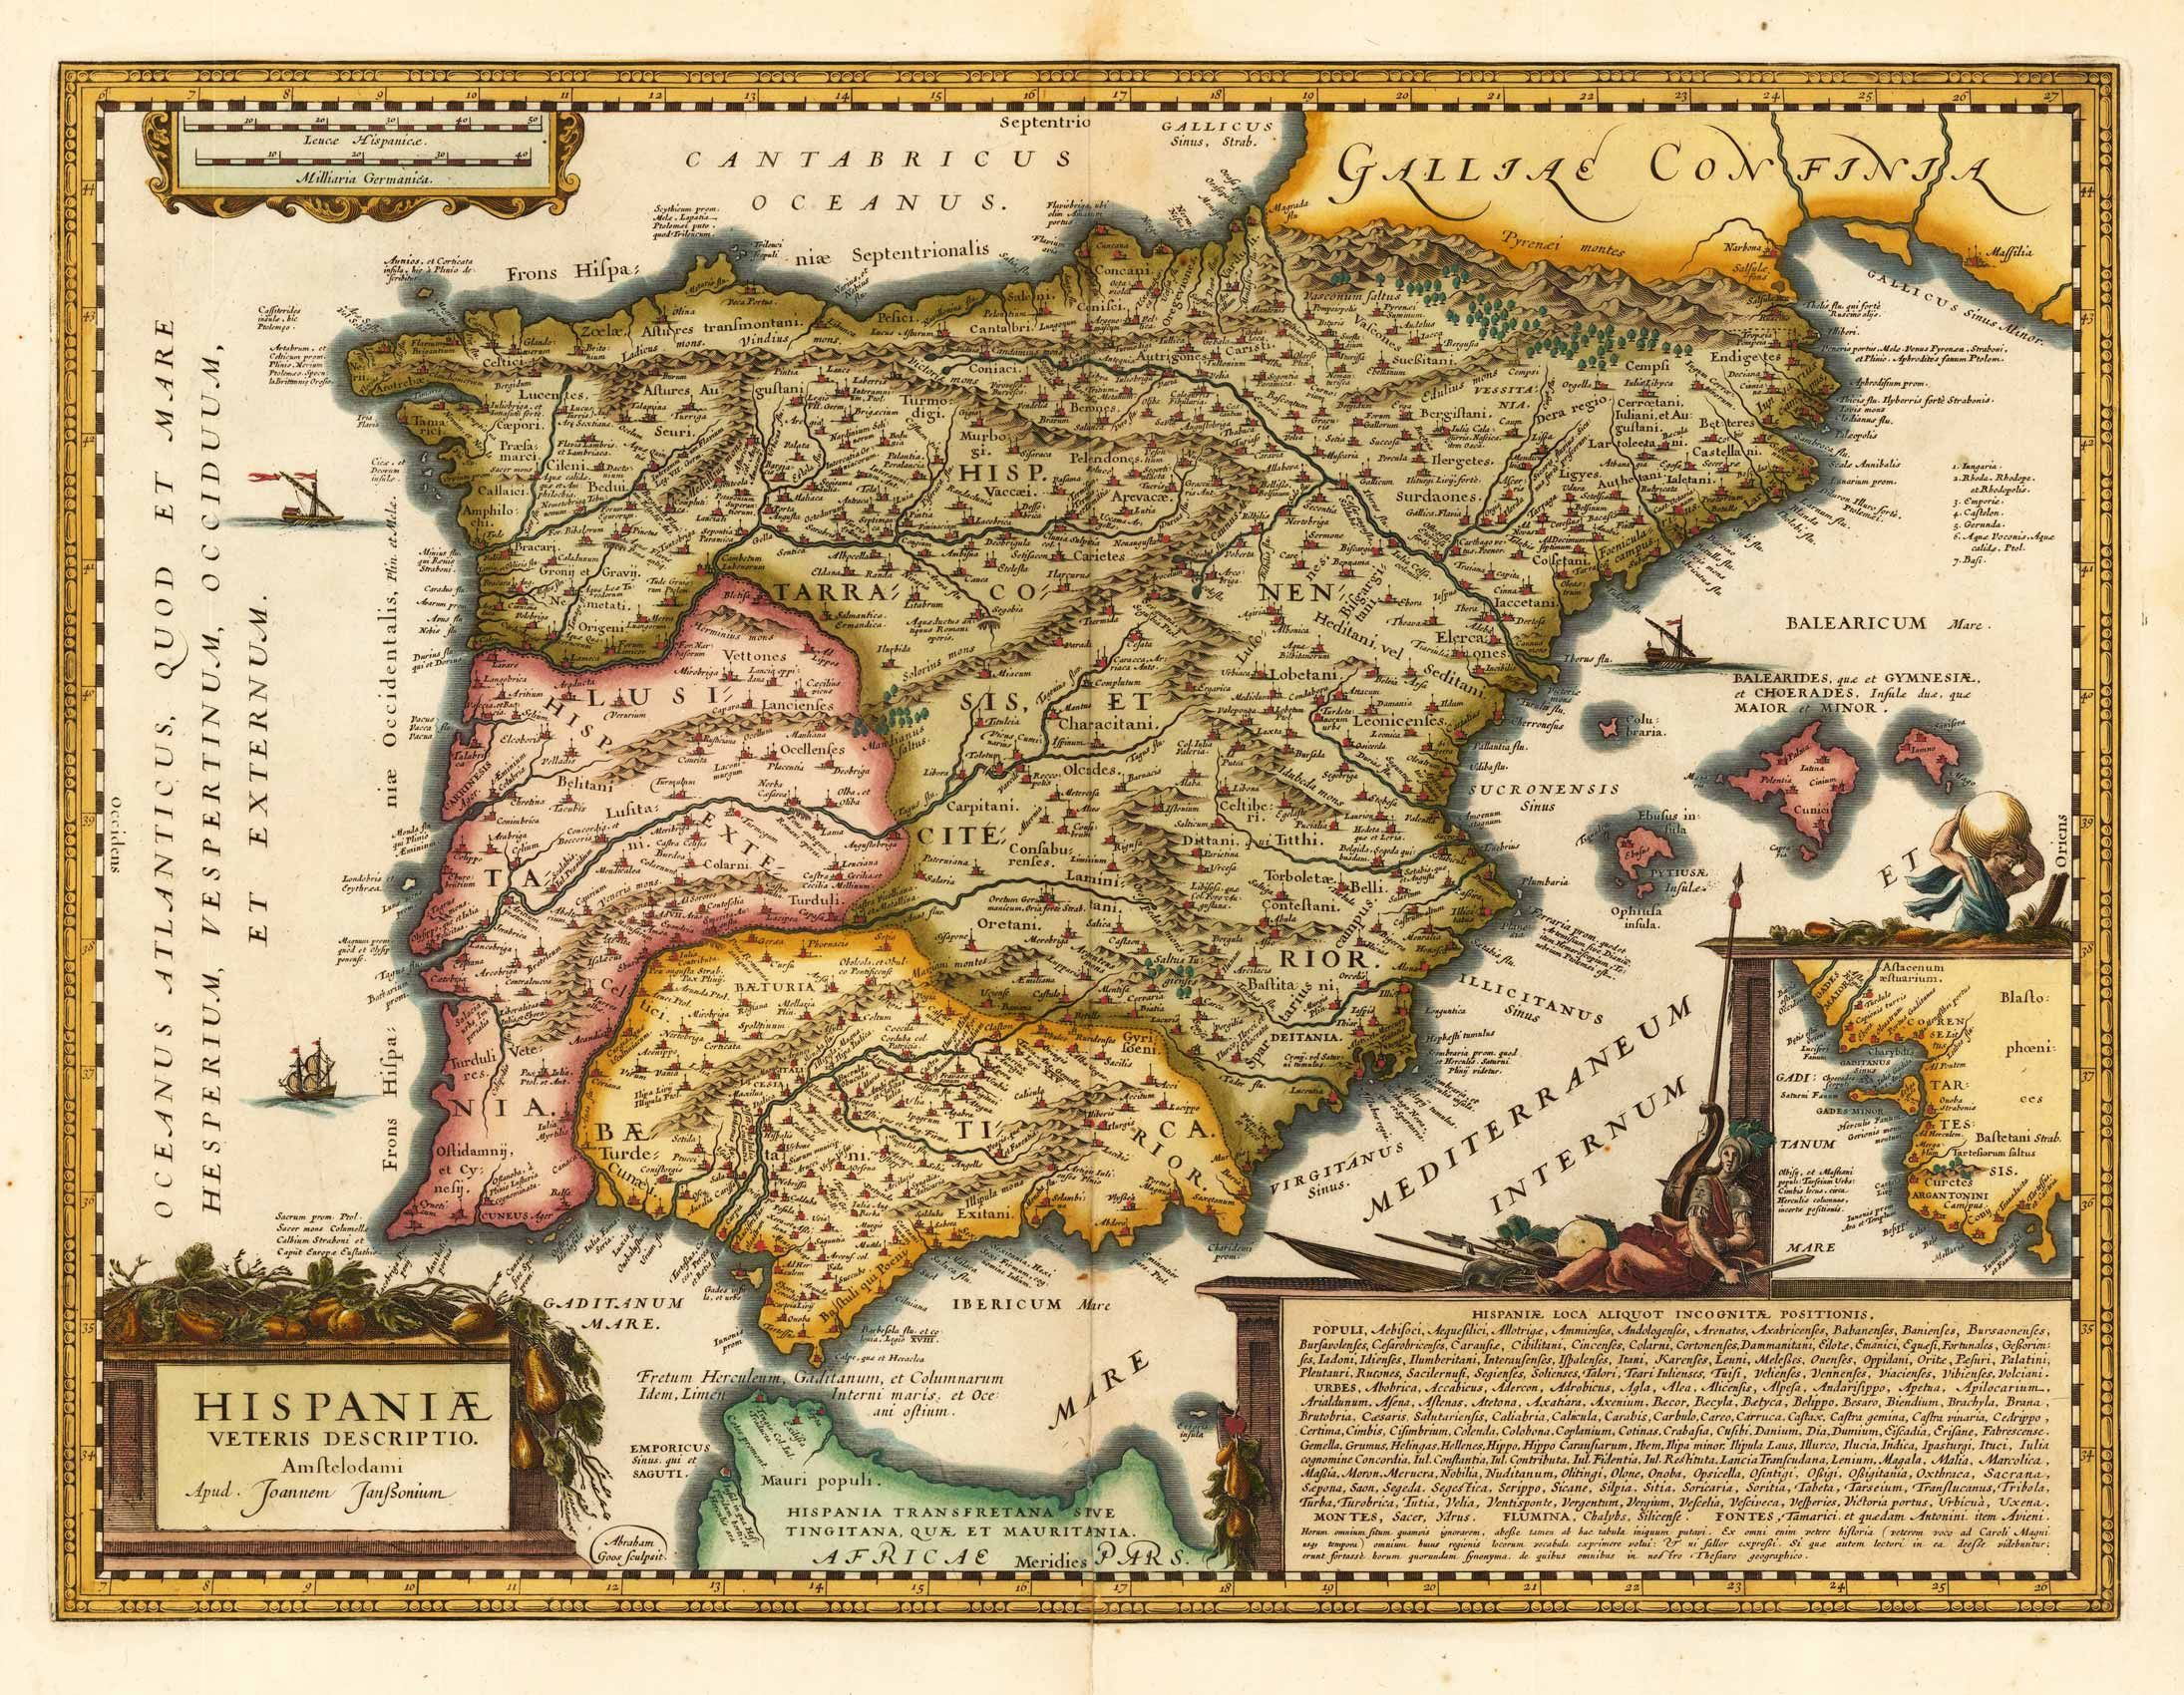 Map 24 Spain.Antique Map Of Spain And Prtual Joan Janssonius 1650 Maps Map